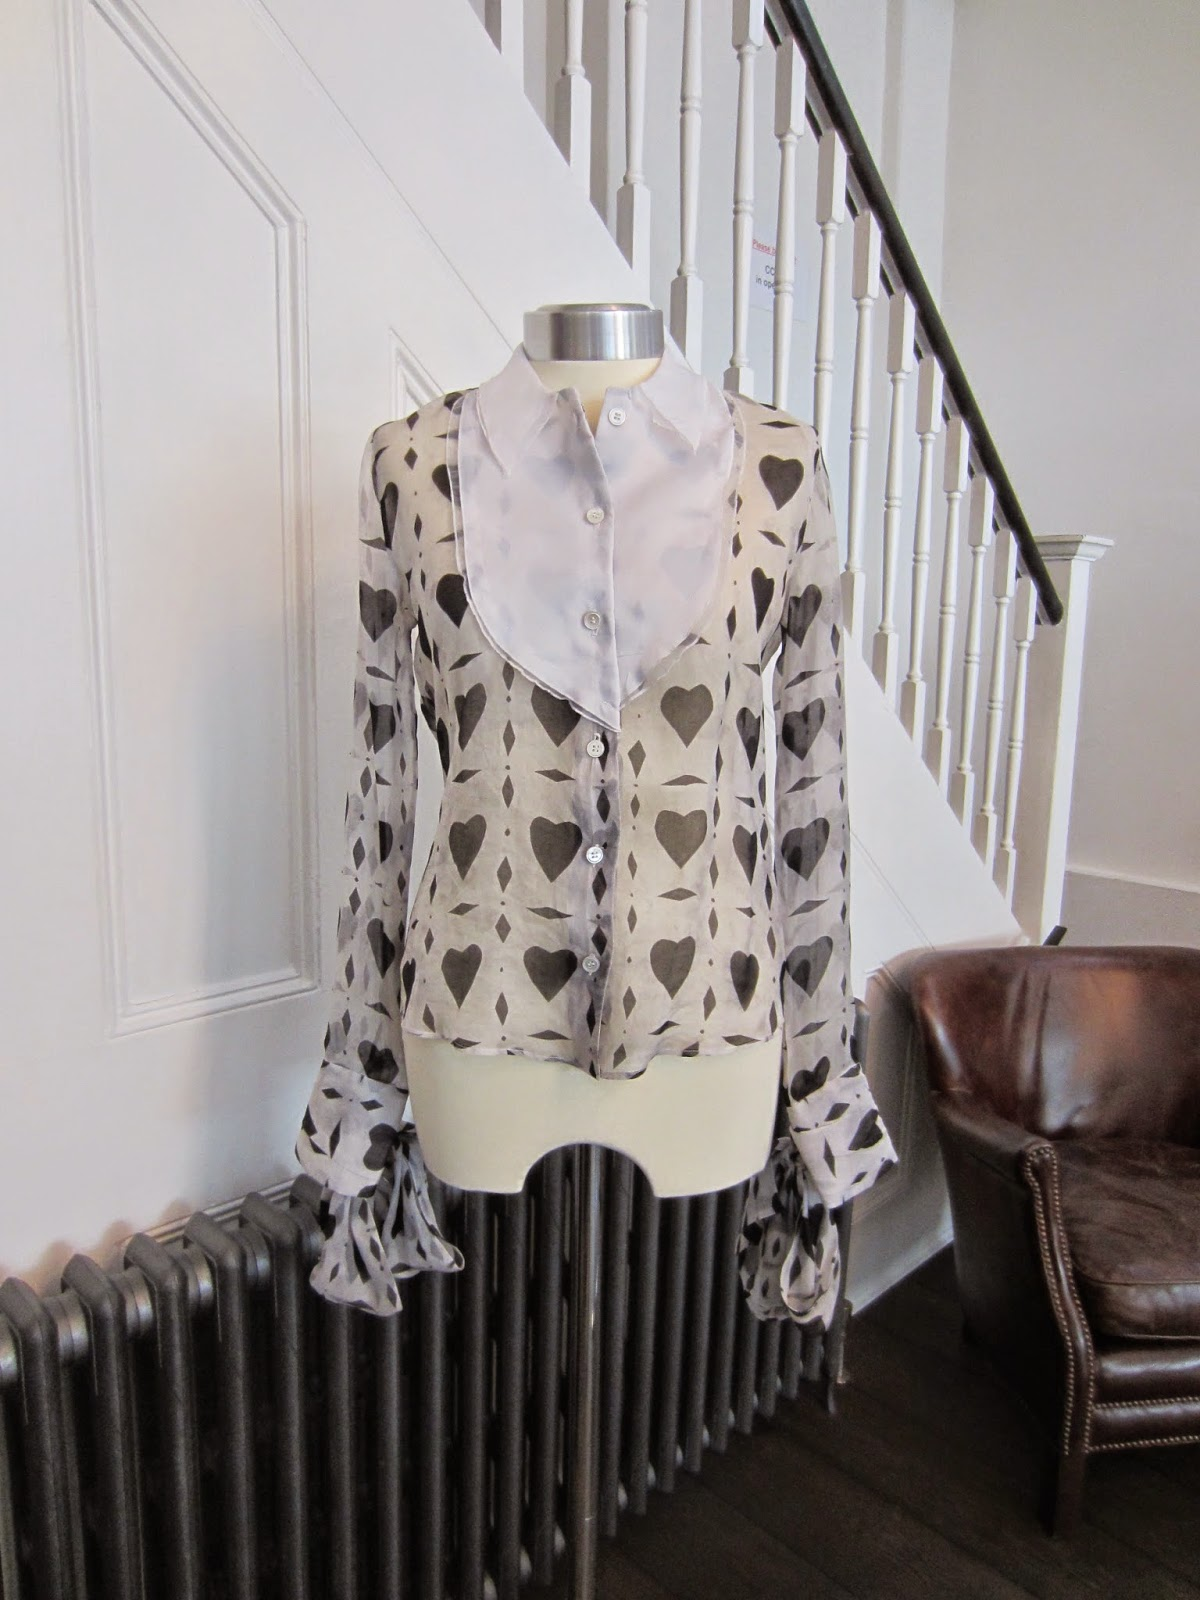 Viktor & Rolf Black & White Hearts & Diamonds Print Blouse